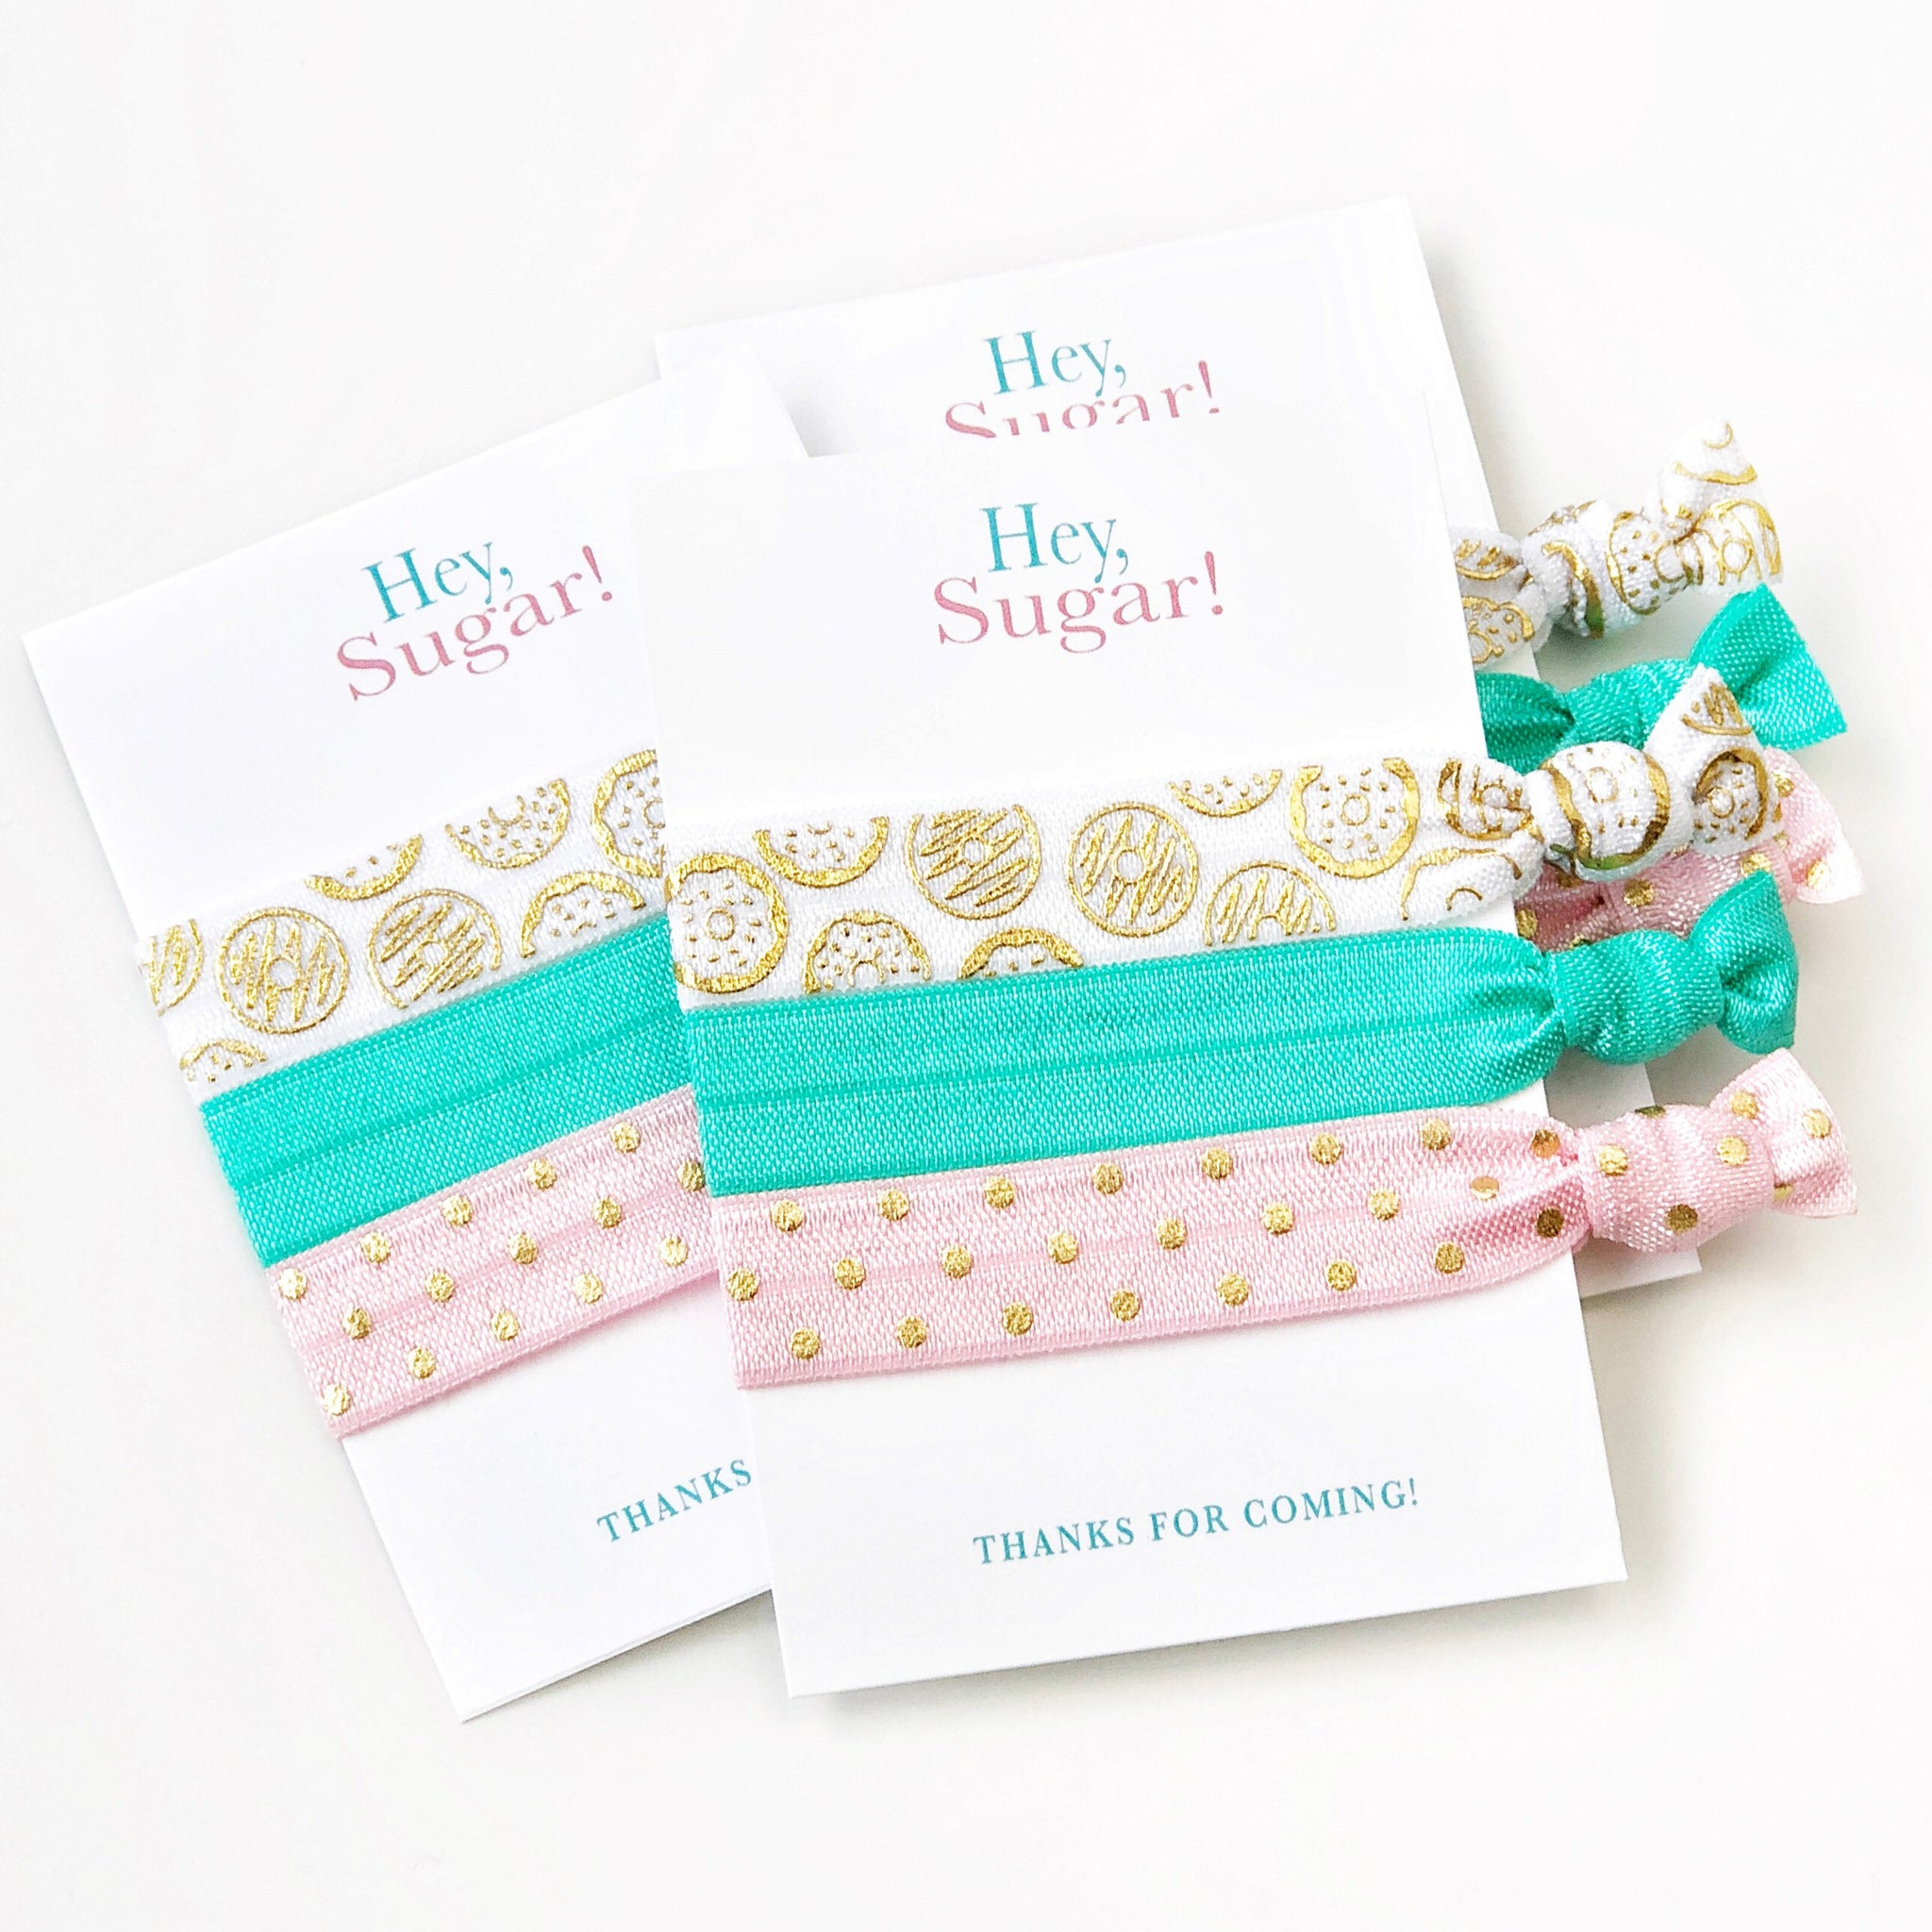 Donut Party Favors - @PlumPolkaDot